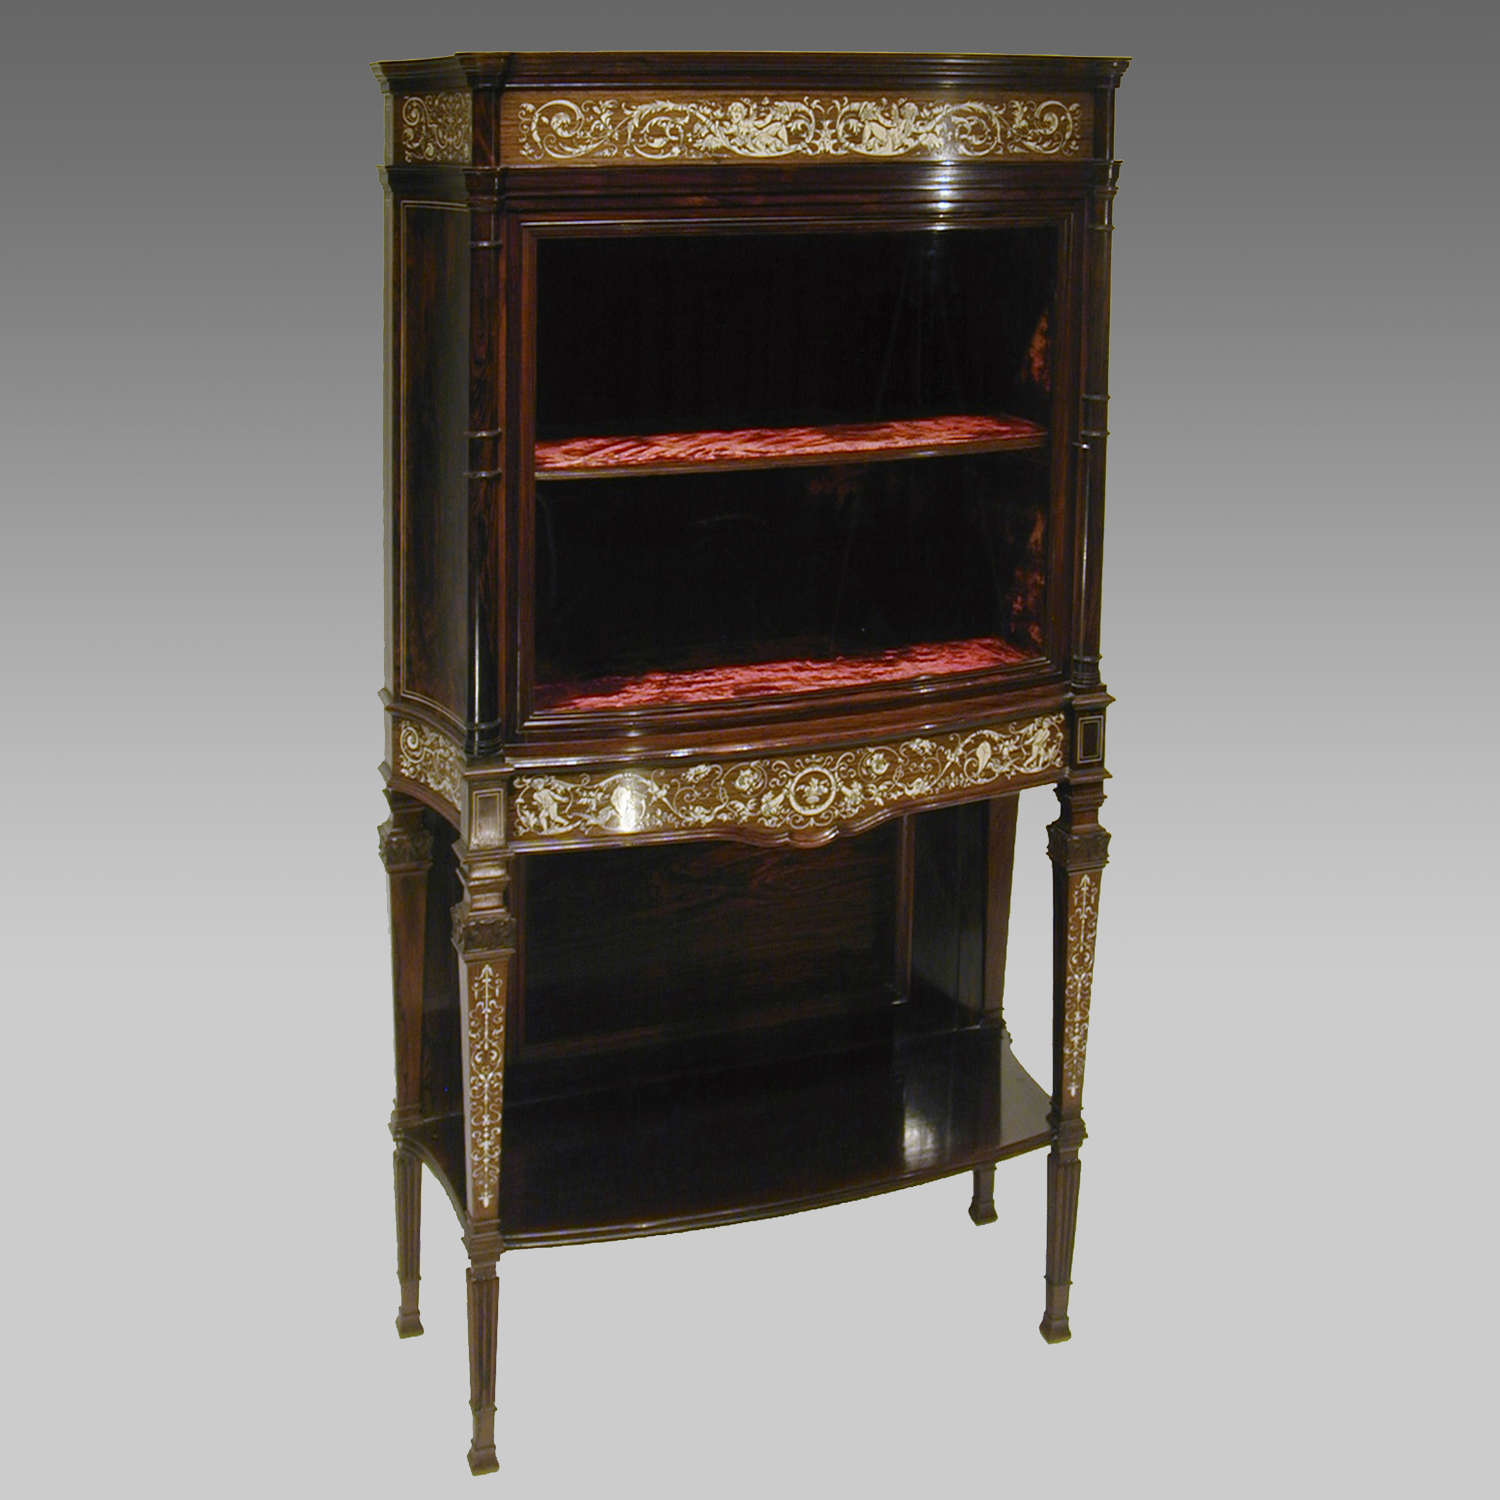 19th century rosewood cabinet by Collinson & Lock